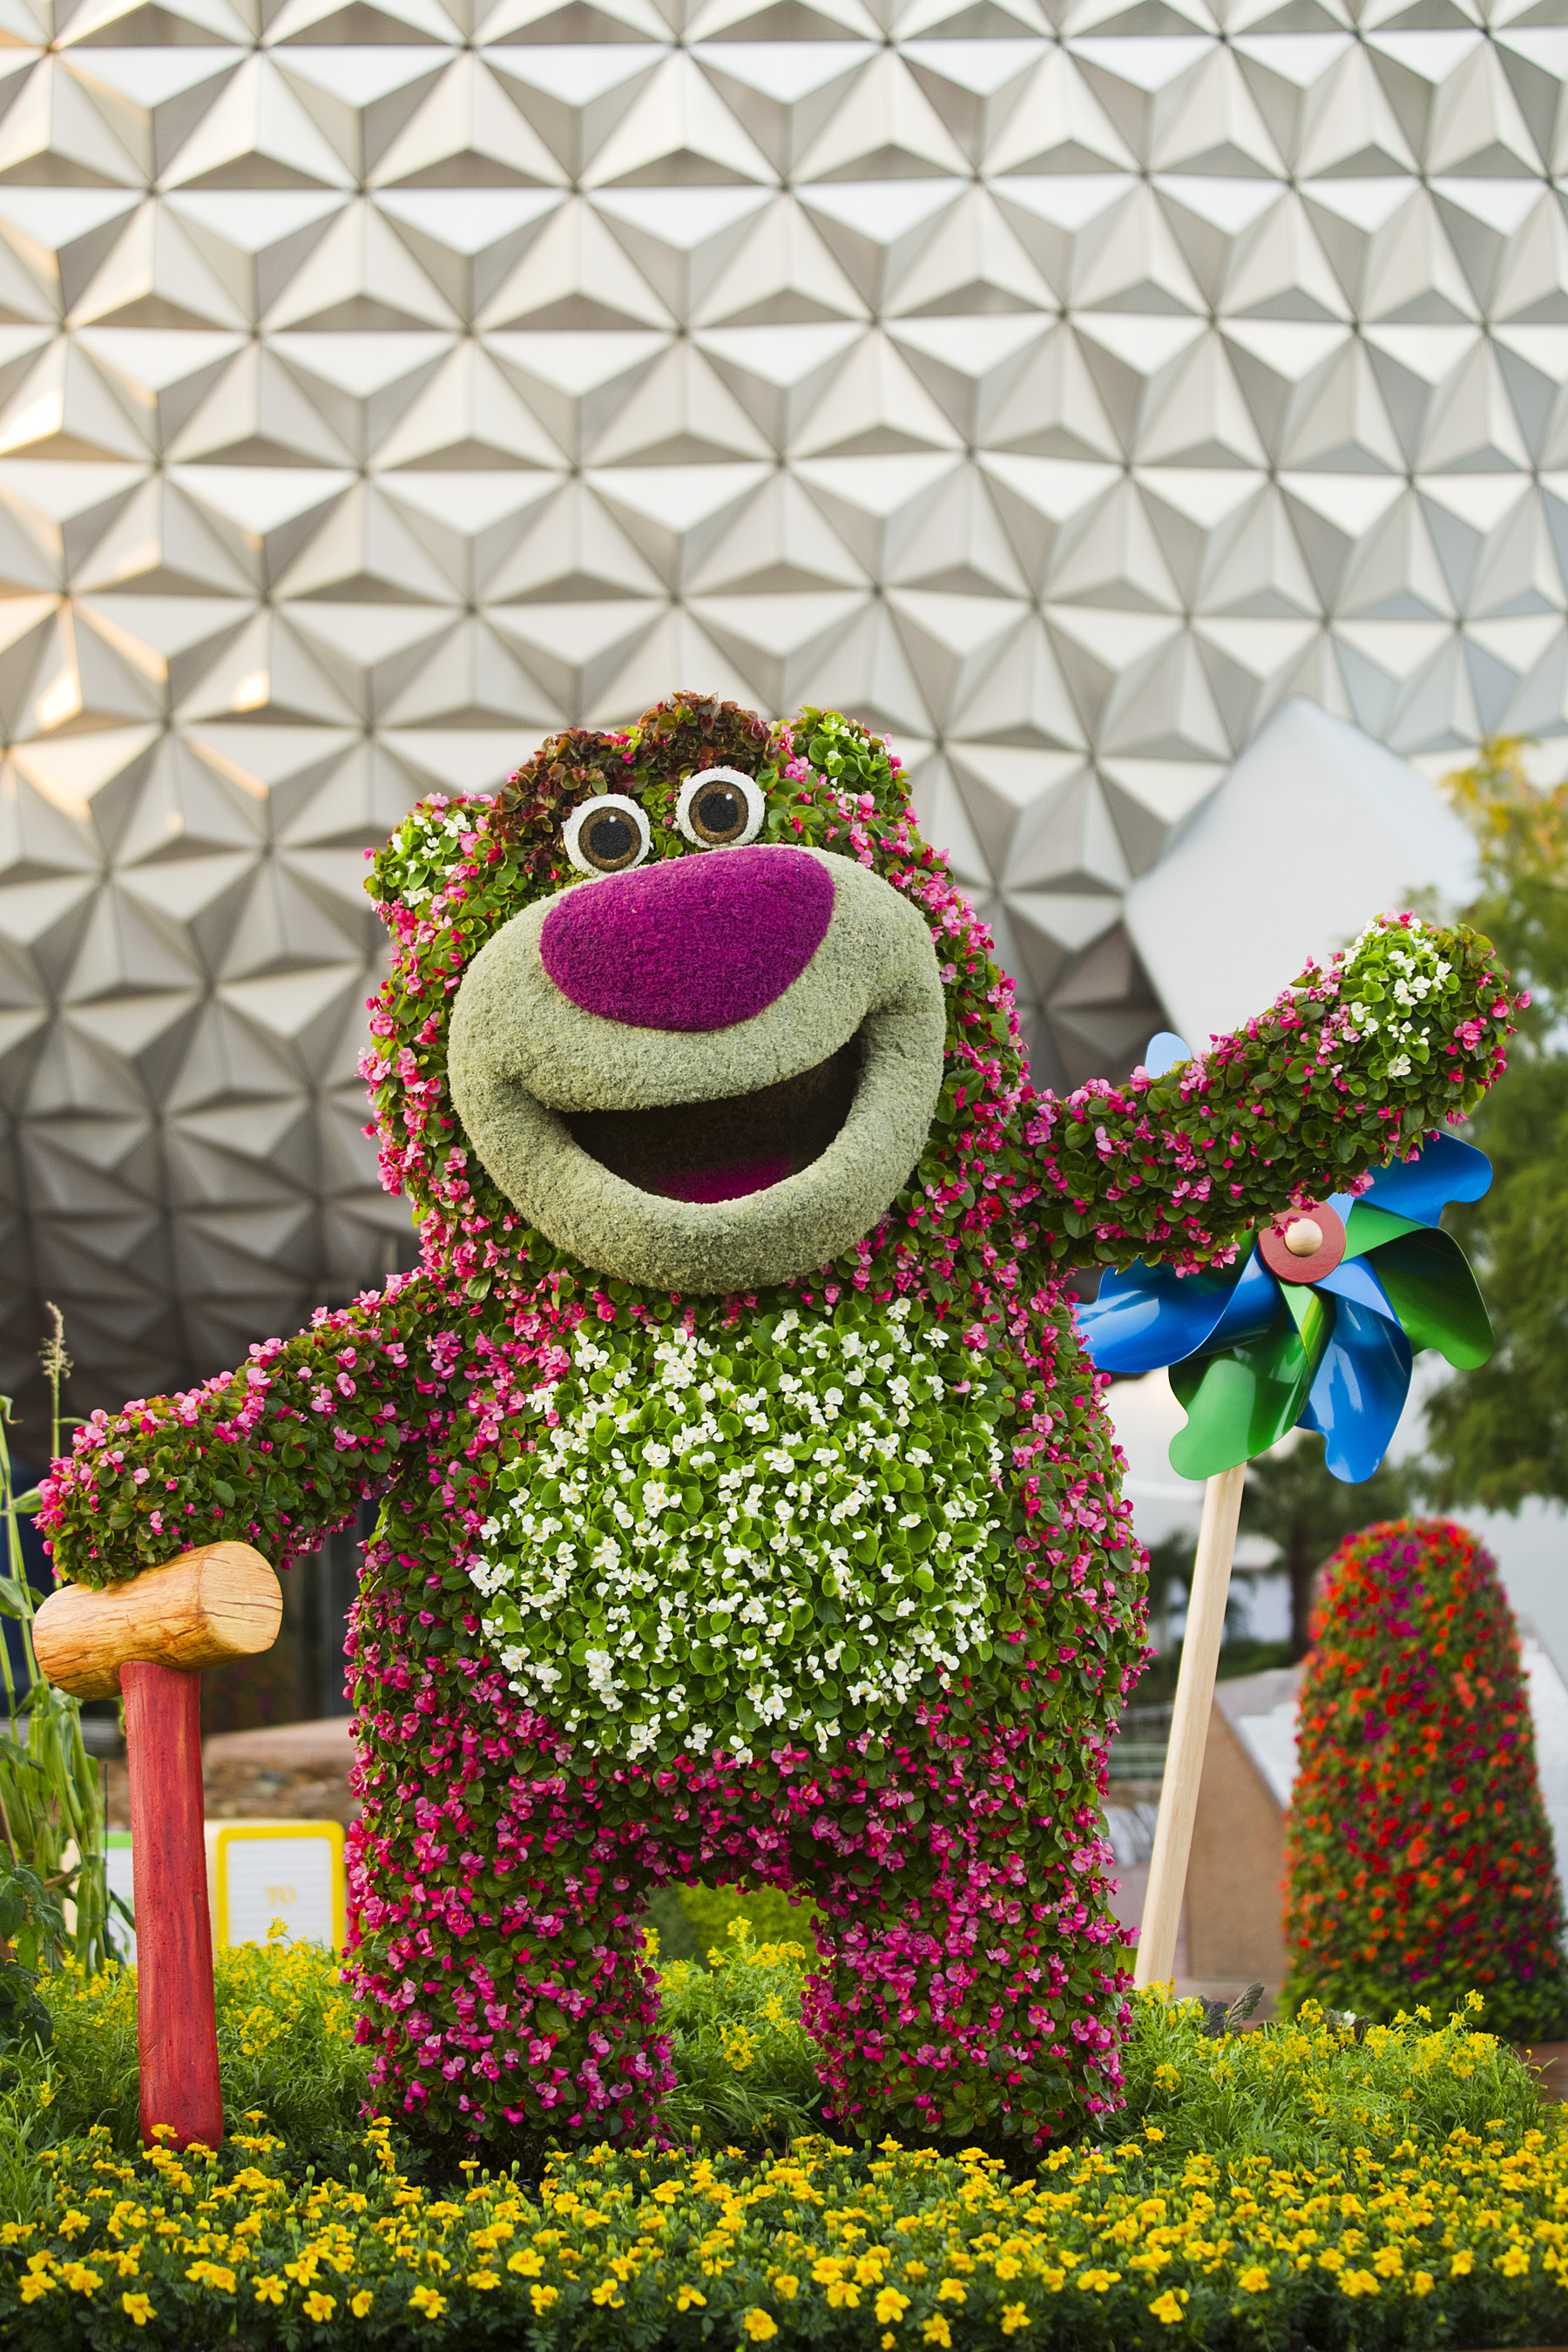 Lotso and Lightning McQueen Finally Installed at the Epcot Flower and Garden Festival